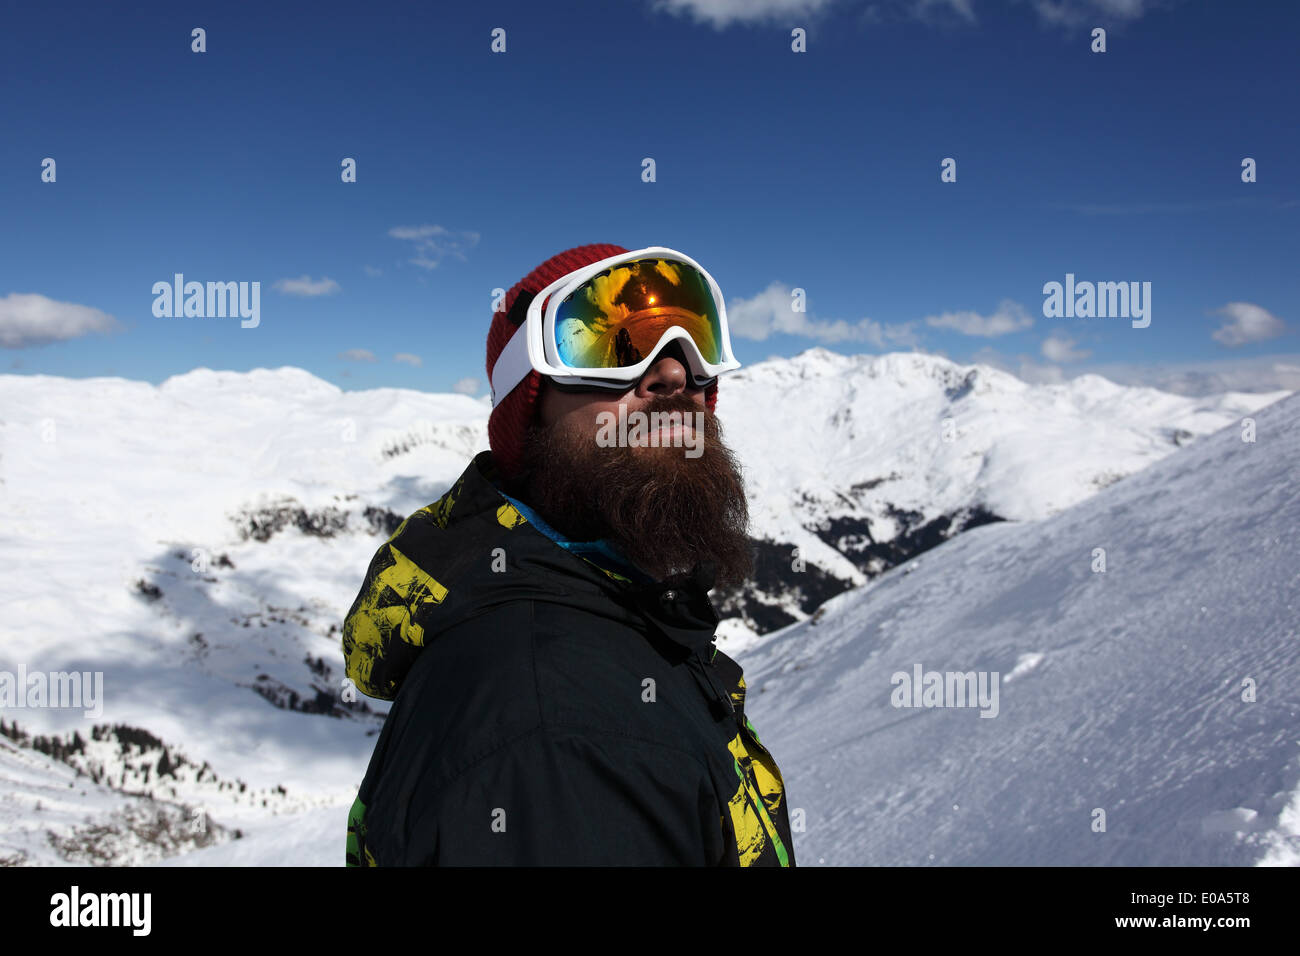 Mid adult man skier looking up at mountain, Mayrhofen, Tyrol, Austria Stock Photo